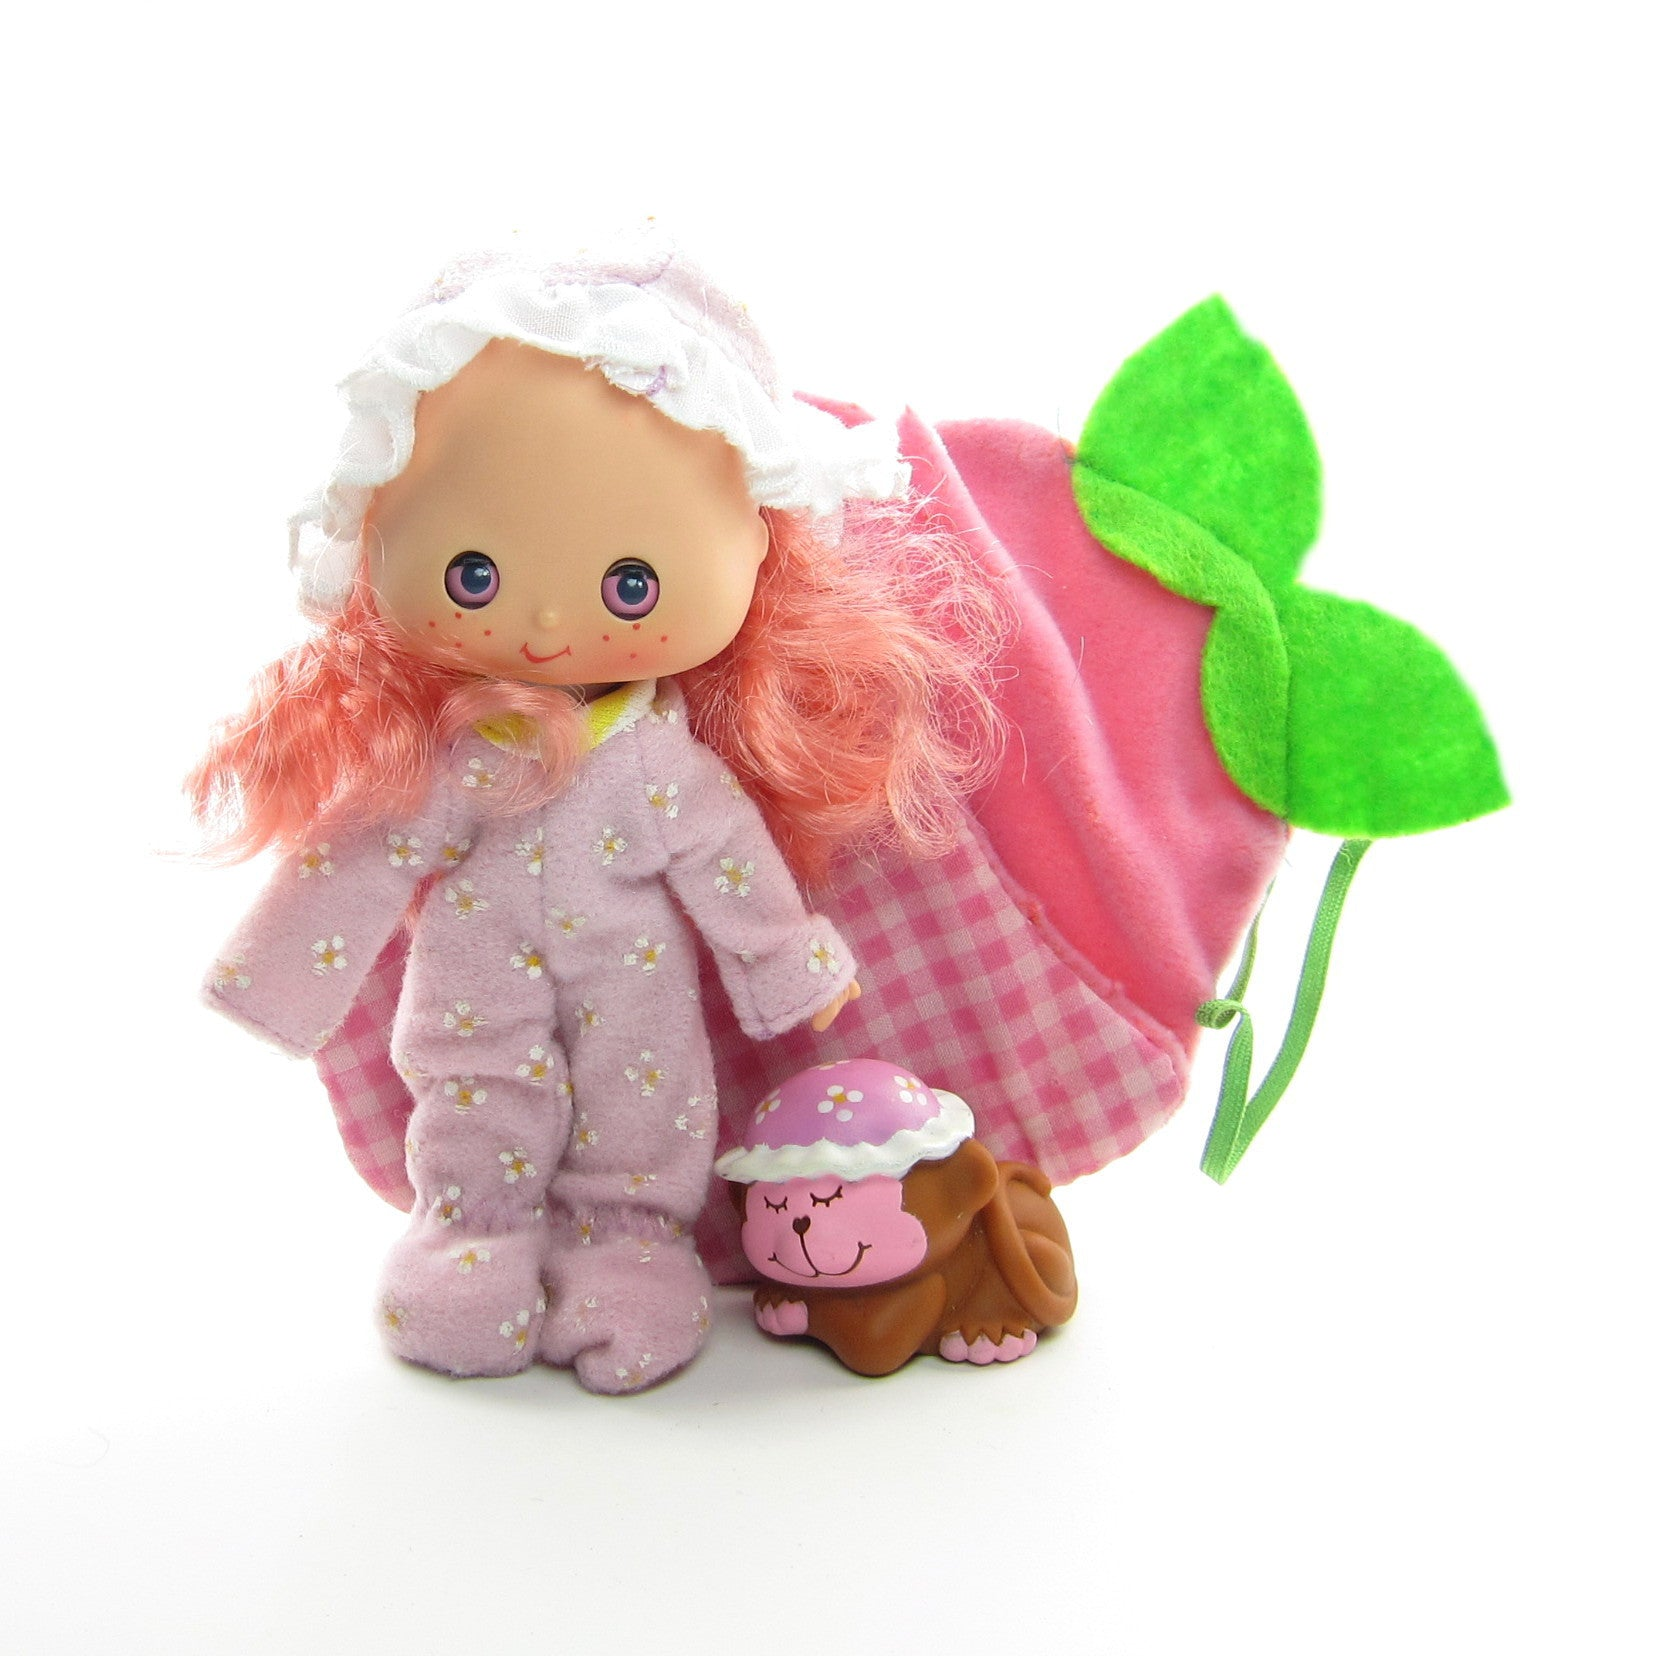 Raspberry Tart Sweet Sleeper doll with sleeping bag, Rhubarb pet